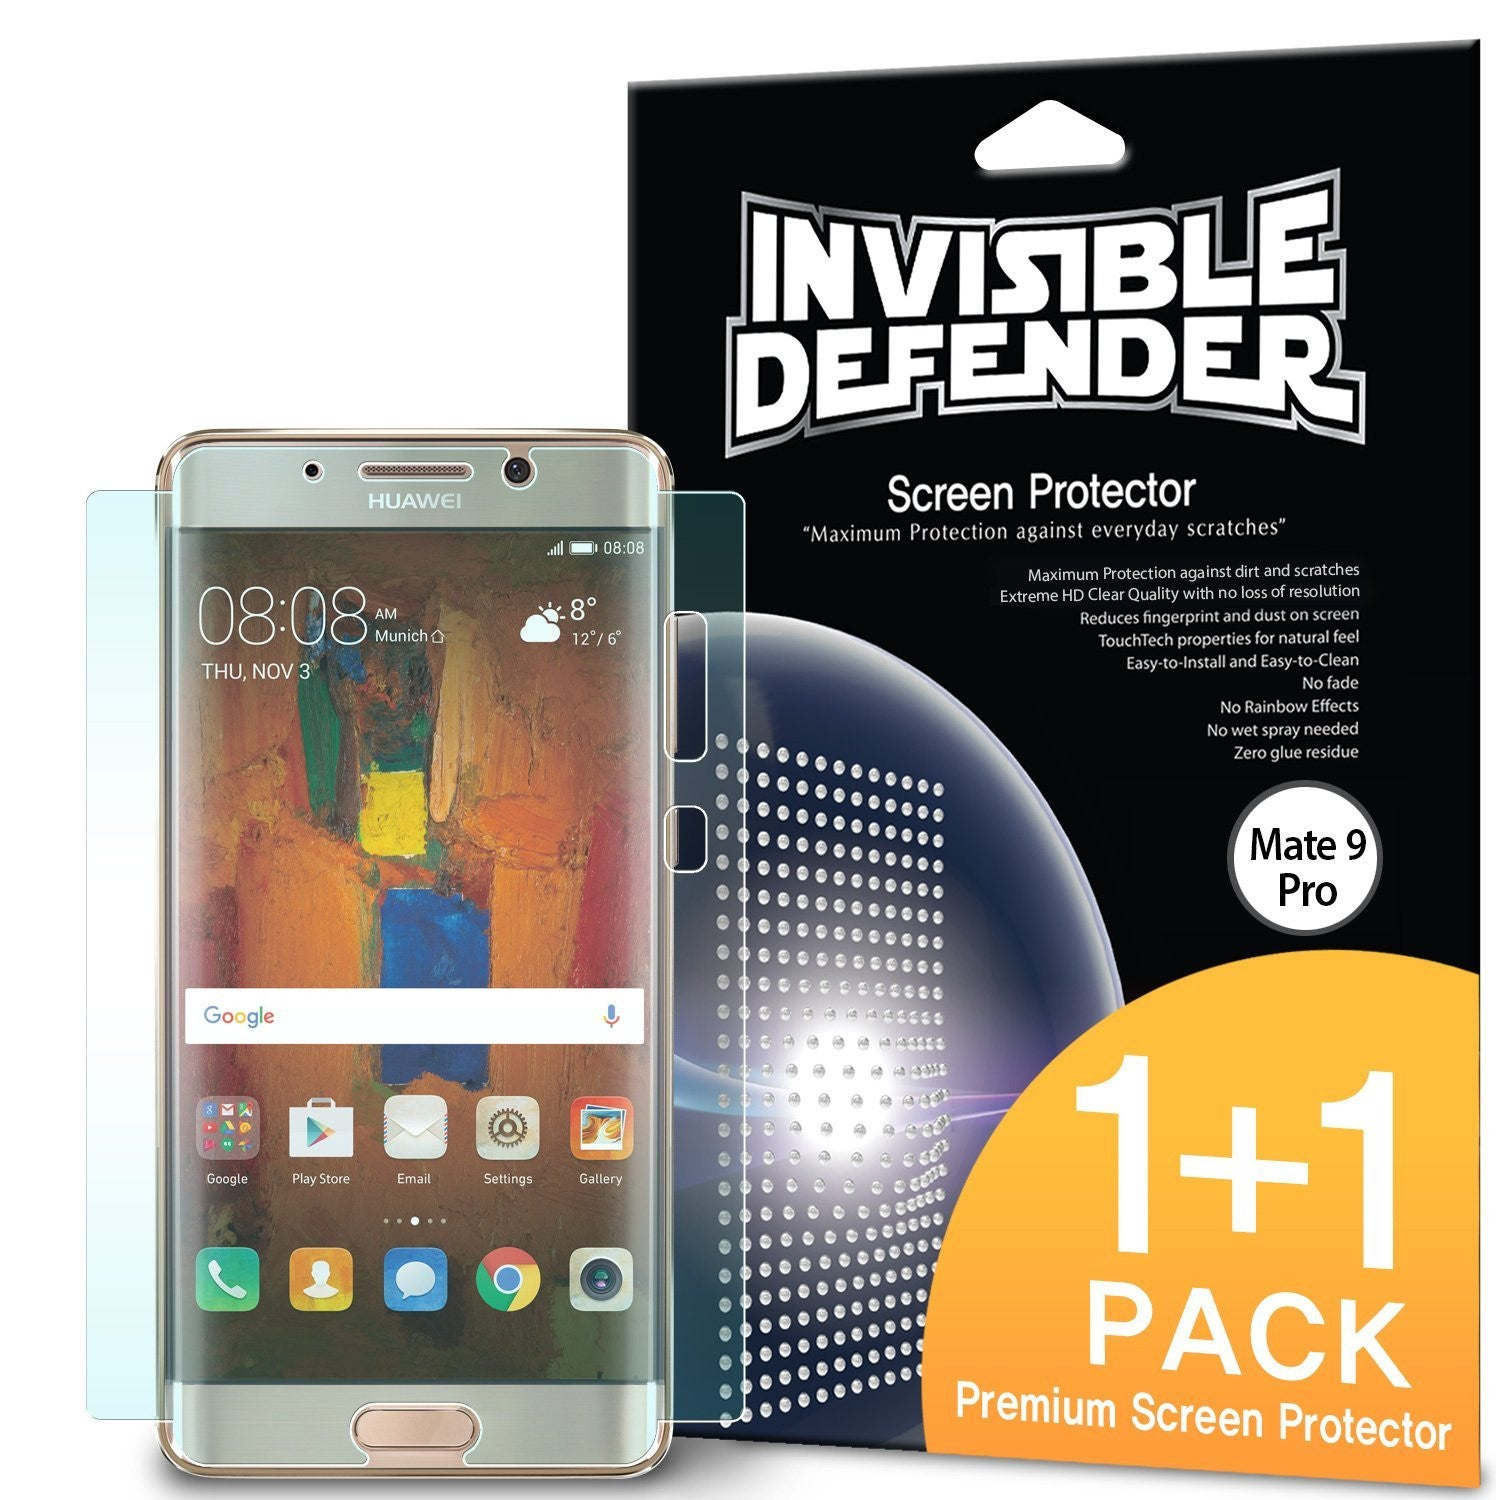 Huawei Mate 9 Pro, Ringke® Invisible Defender [Full Coverage] 2-Pack Screen Protector